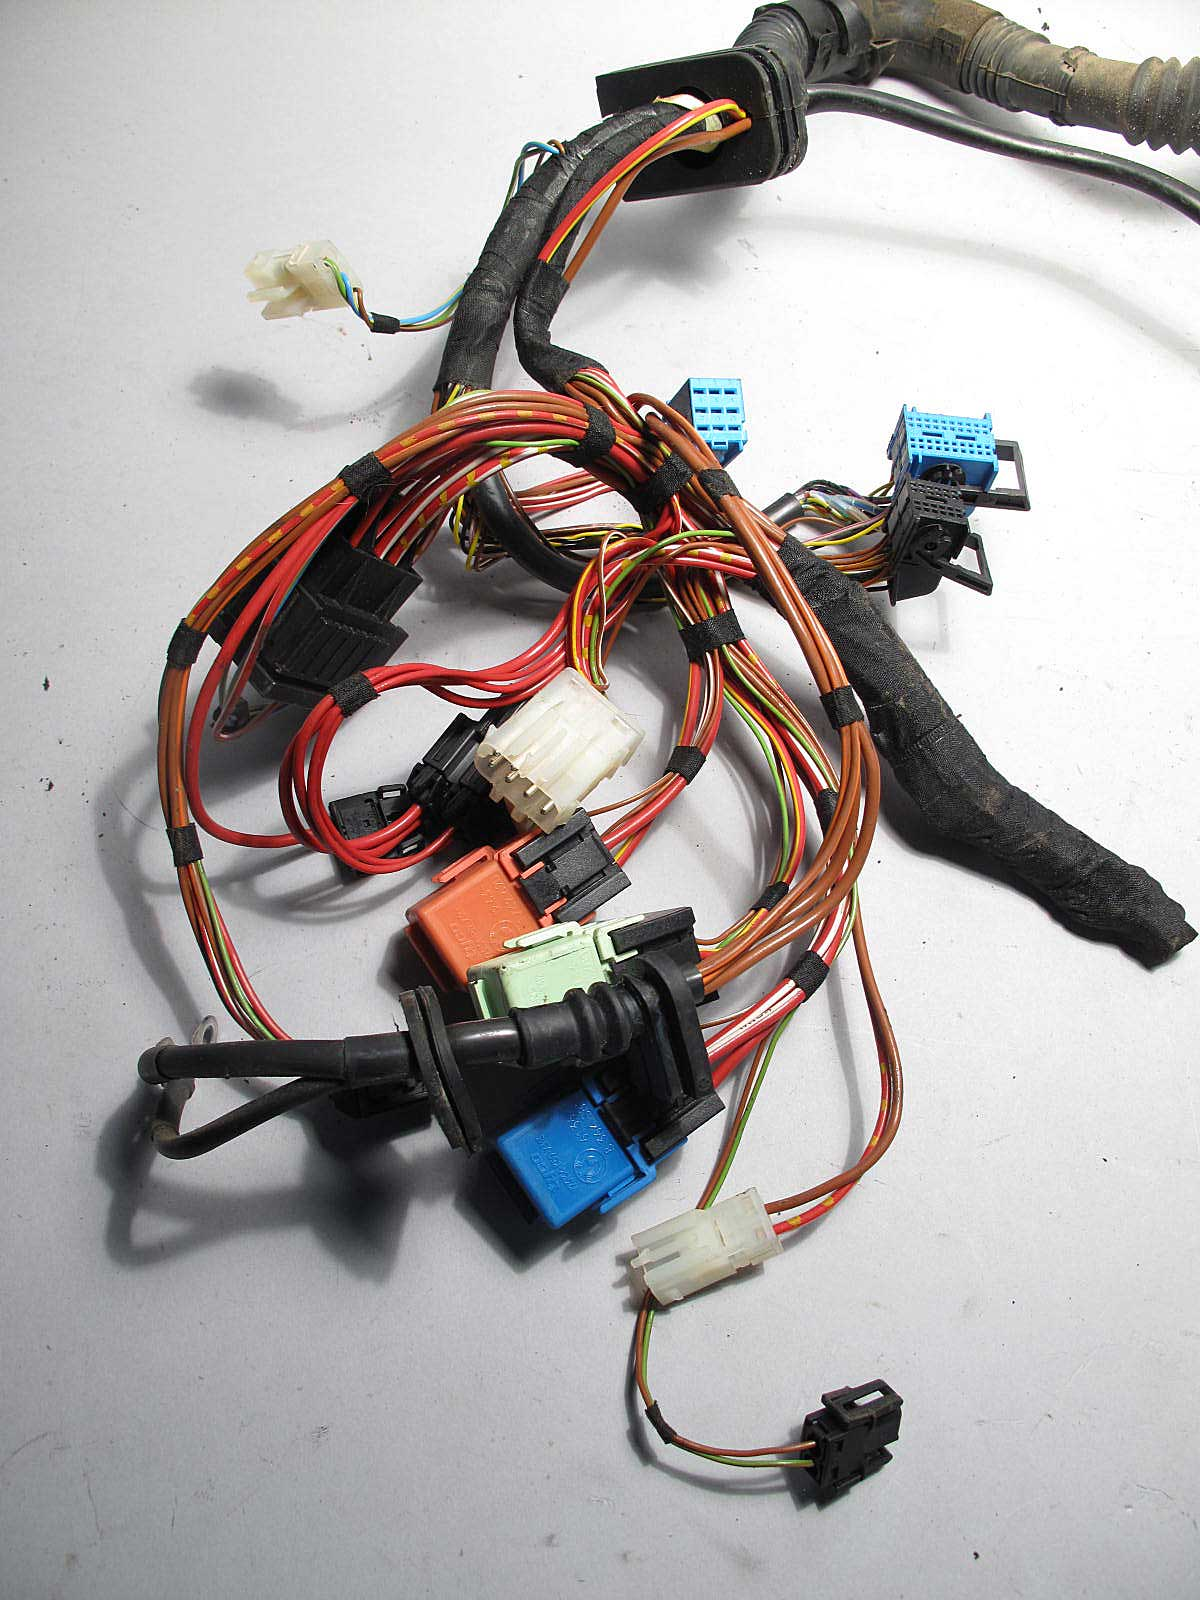 inv_008702_01 bmw z3 roadster coupe m54 automatic transmission wiring harness bmw 2002 wiring harness at crackthecode.co